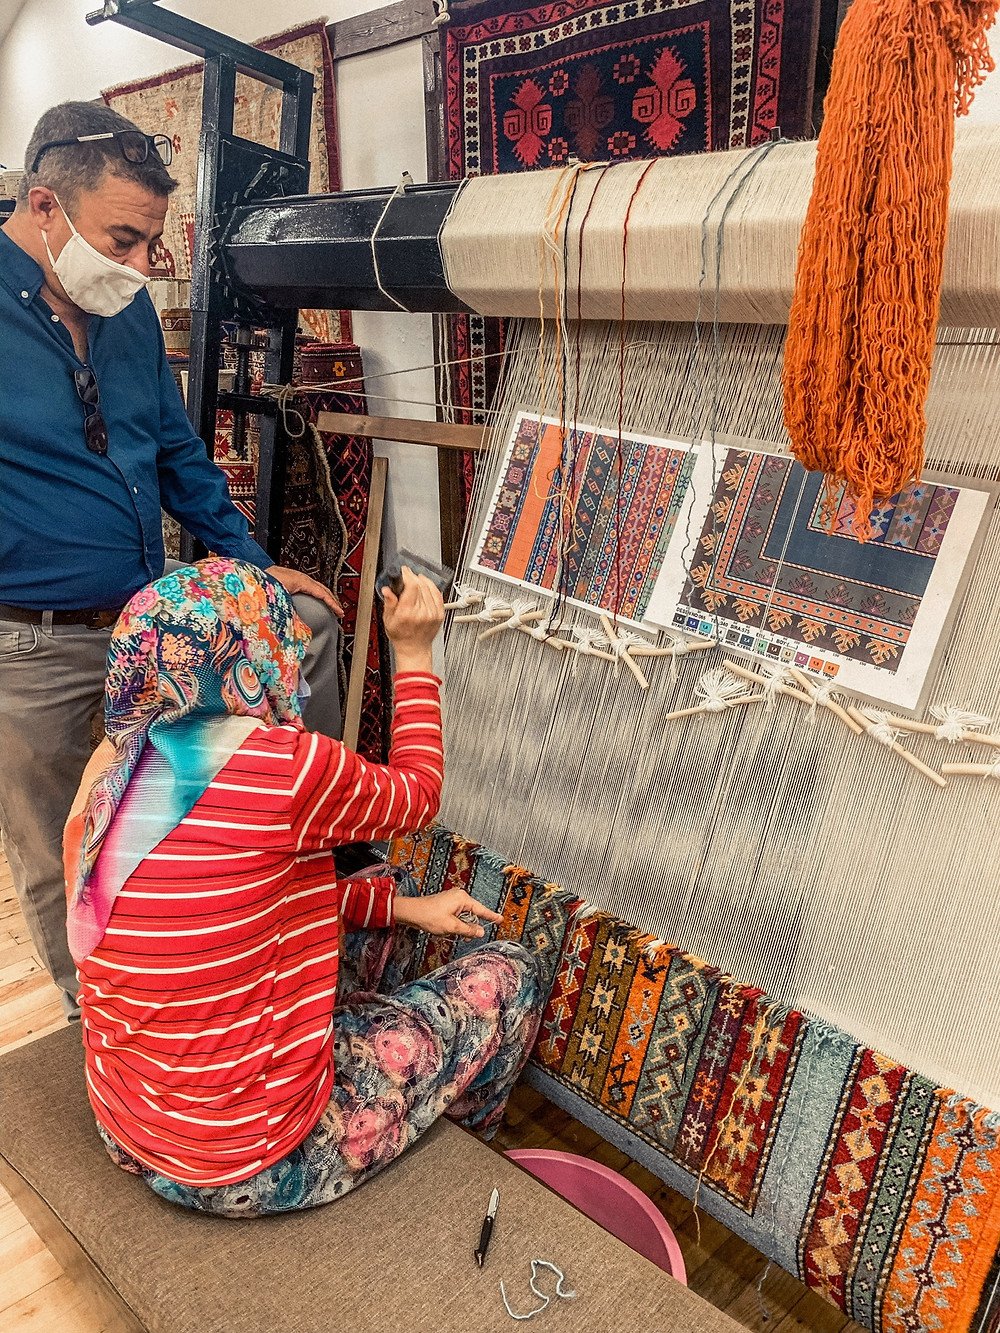 A master weaver creating a Turkish carpet, one knot at a time